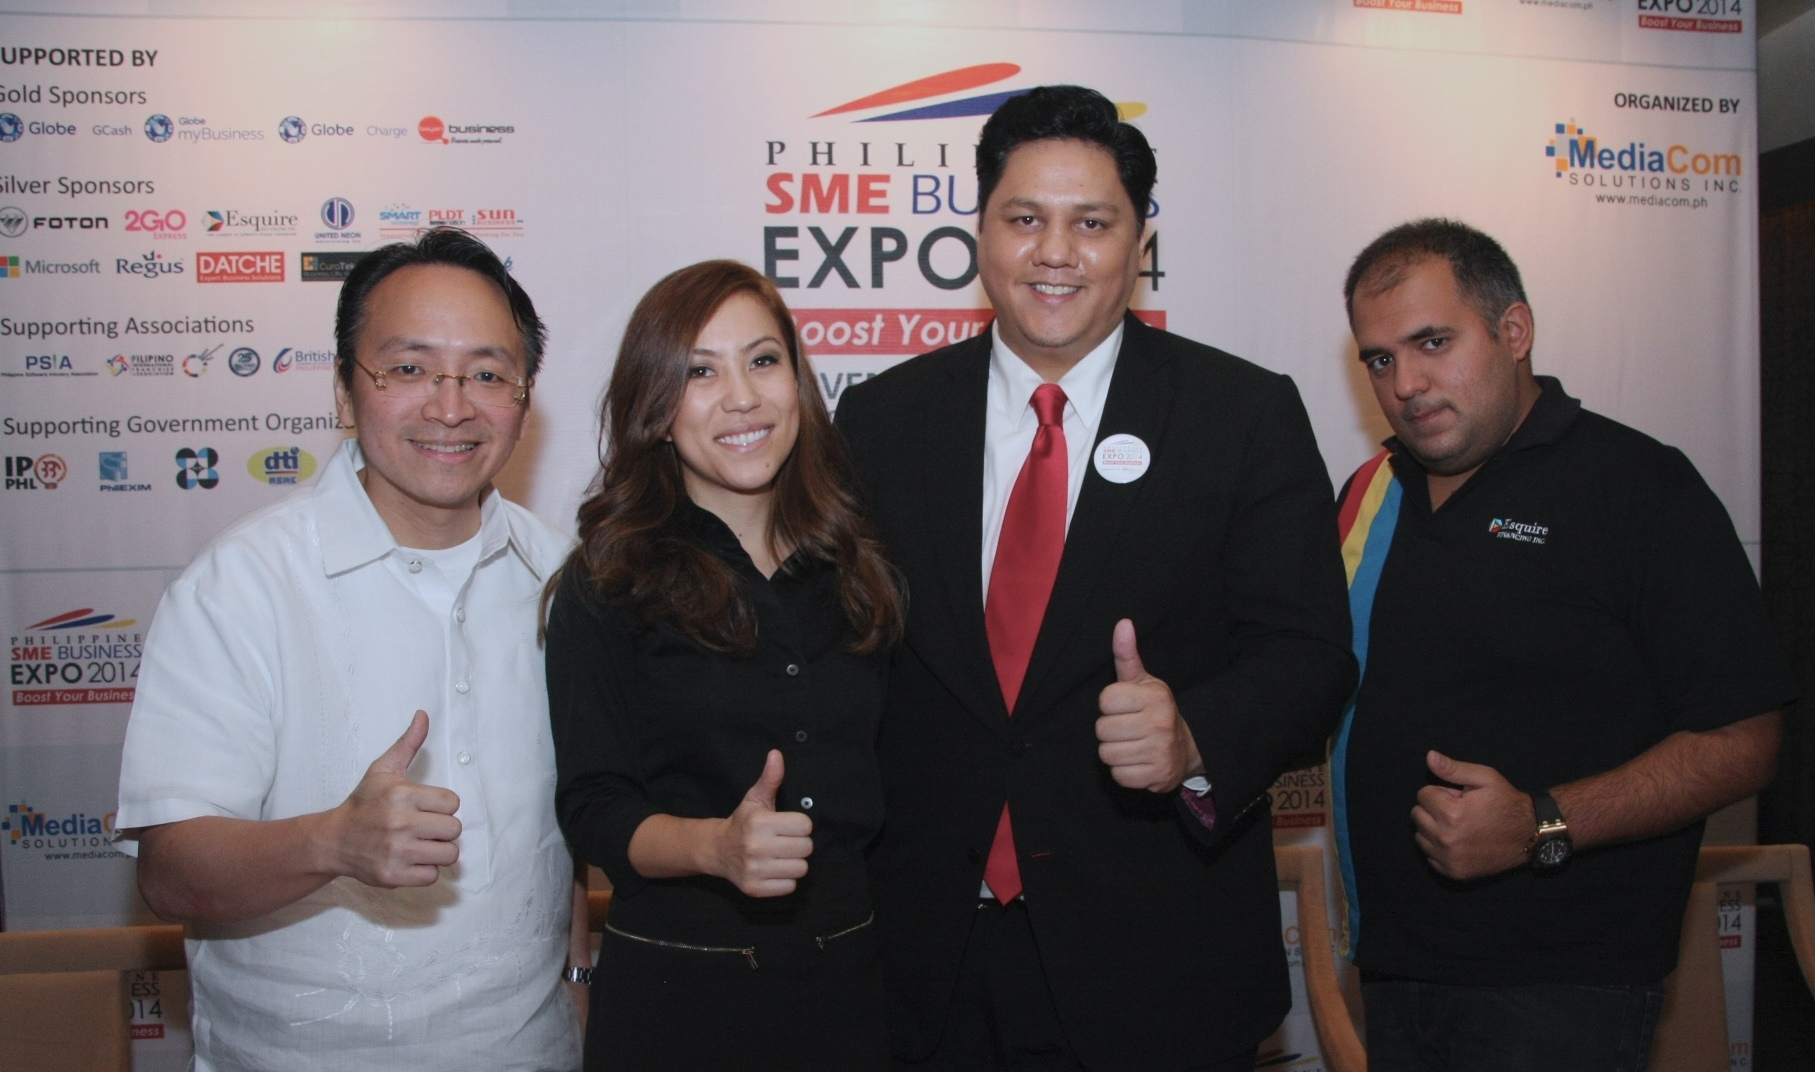 Small and medium enterprises gather for 2nd Philippine SME Business Expo